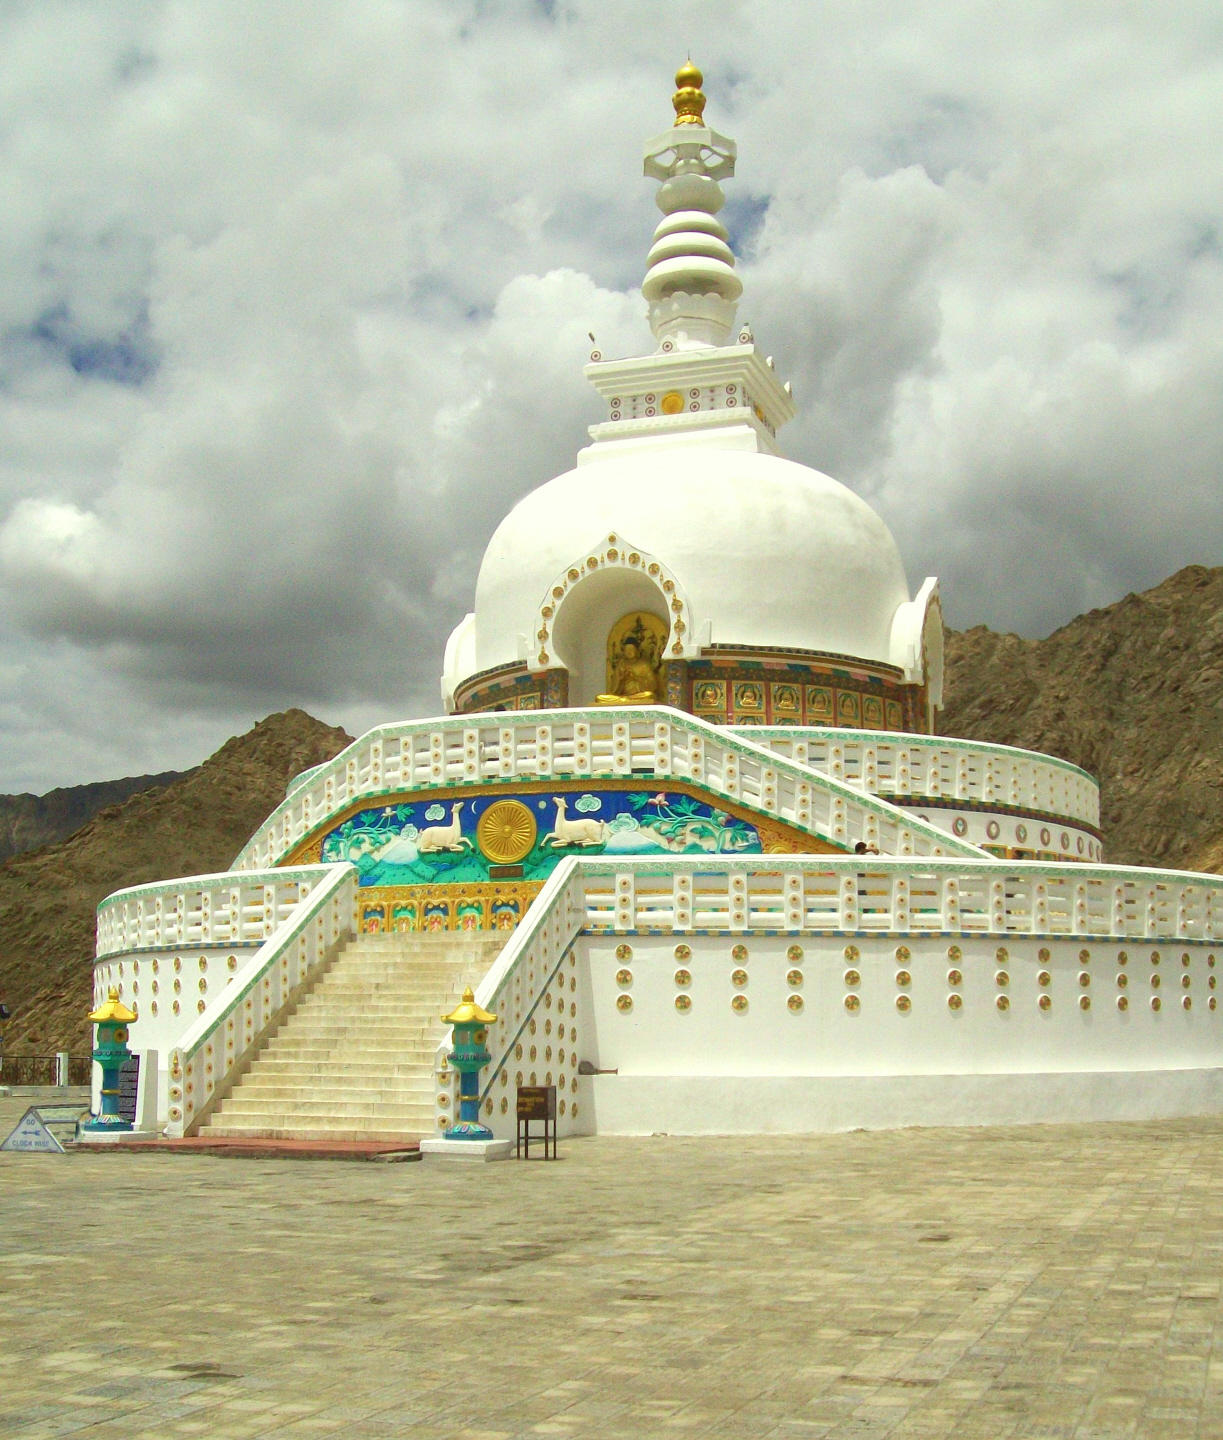 Shanthi (Peace) Stupa - A Gift from the Japanese - Leh, Ladakh